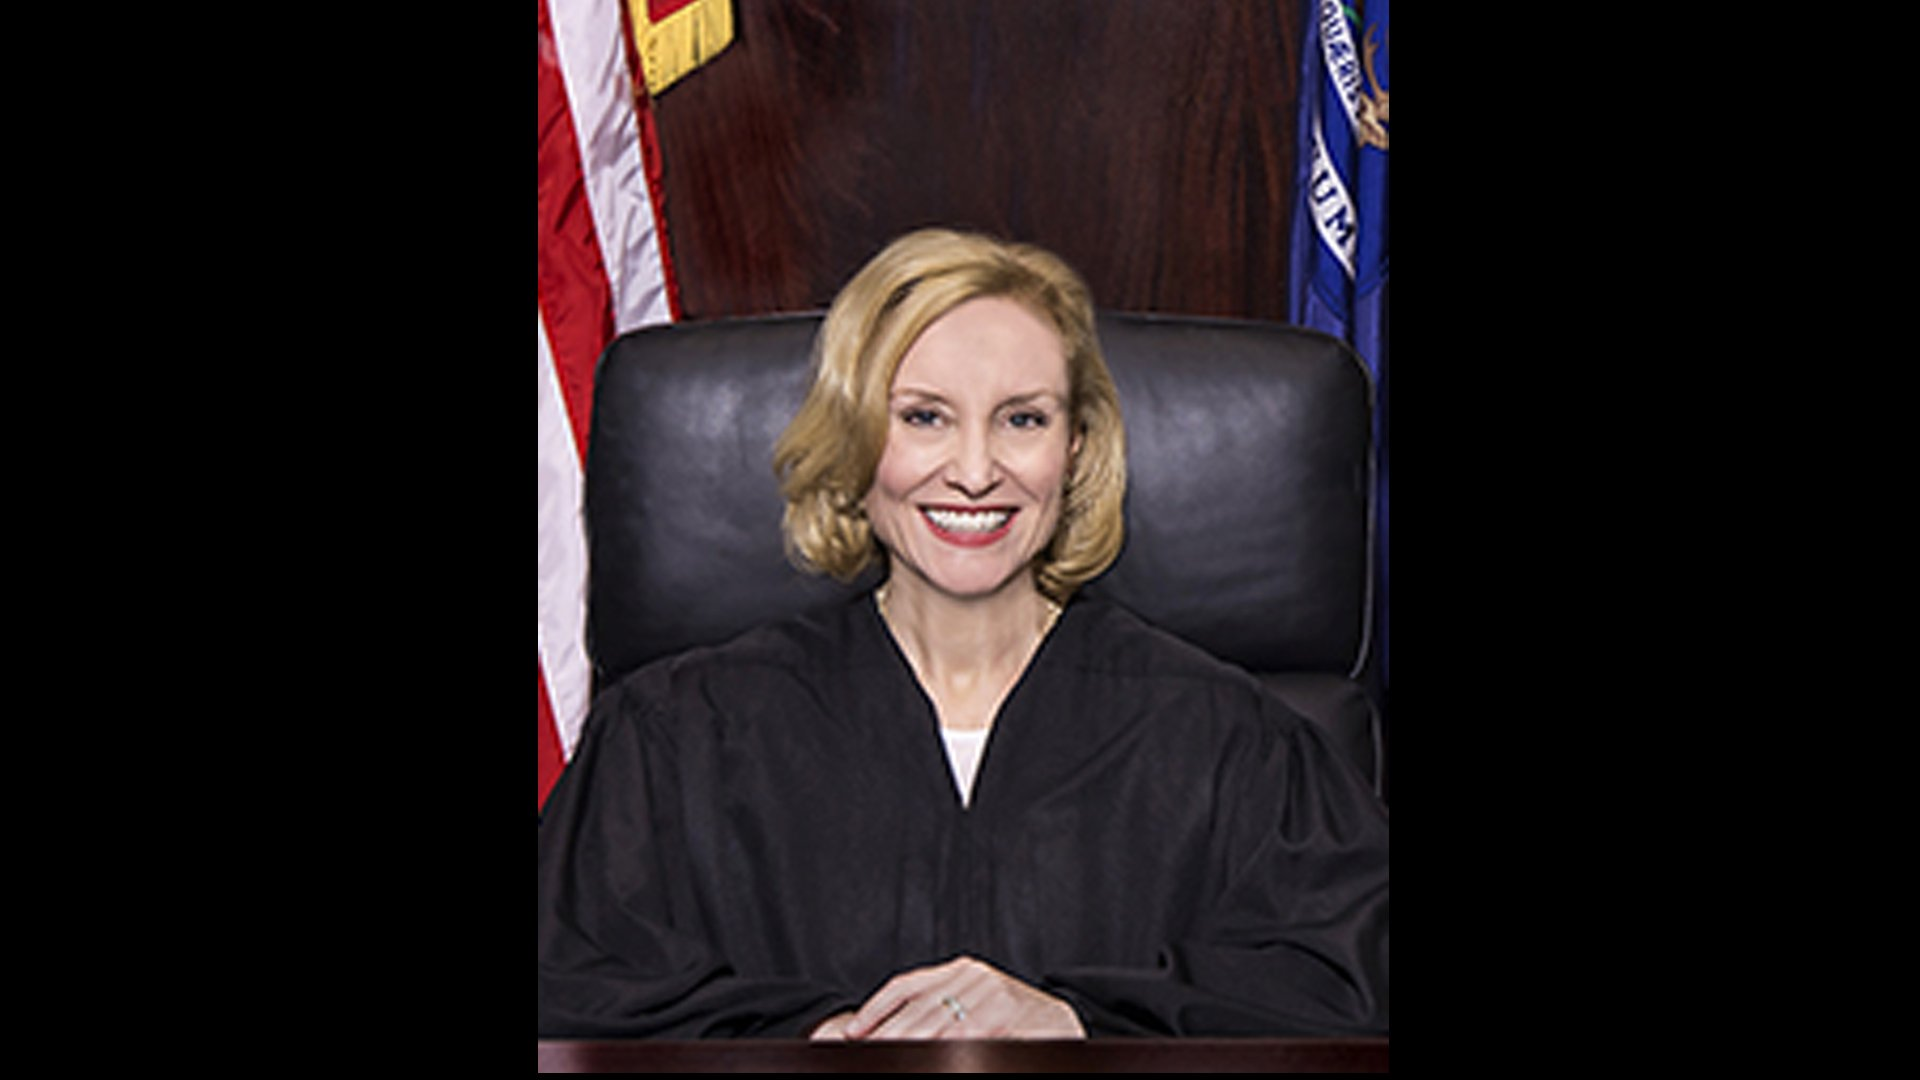 Michigan Supreme Court Justice Joan Larsen confirmed to U.S. 6th Circuit Court